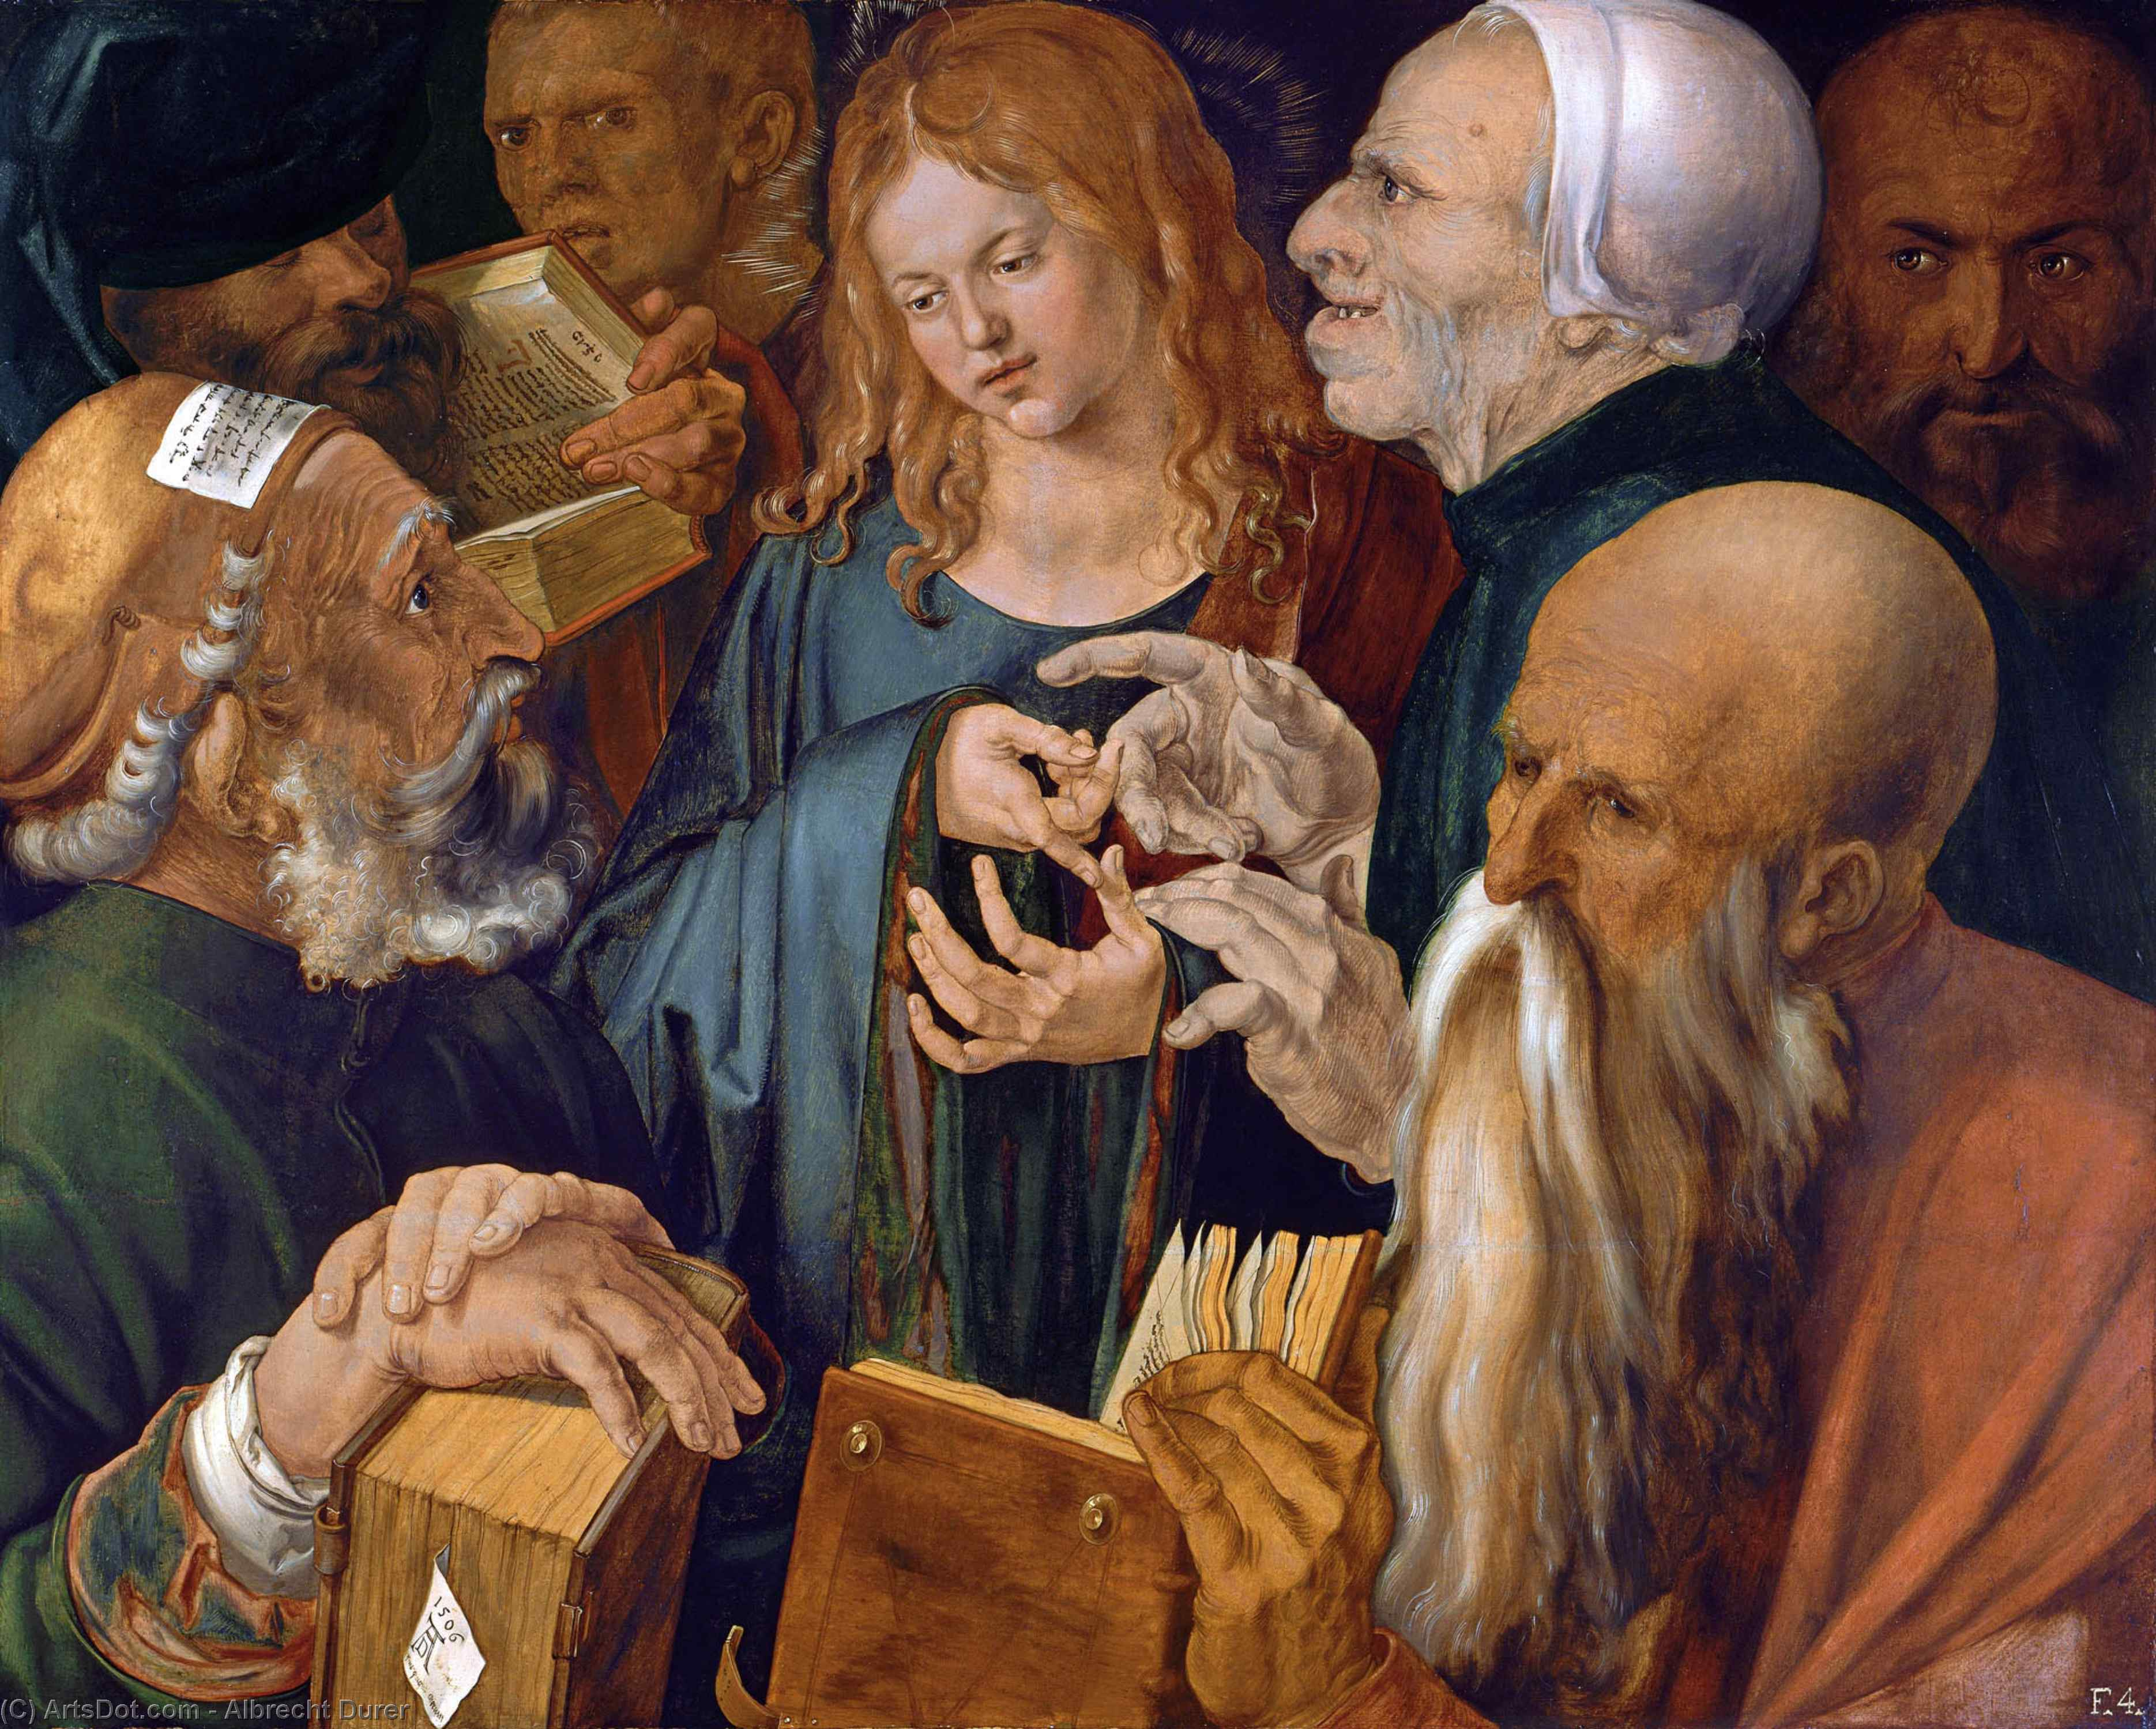 WikiOO.org - Encyclopedia of Fine Arts - Maleri, Artwork Albrecht Durer - Christ Among the Doctors